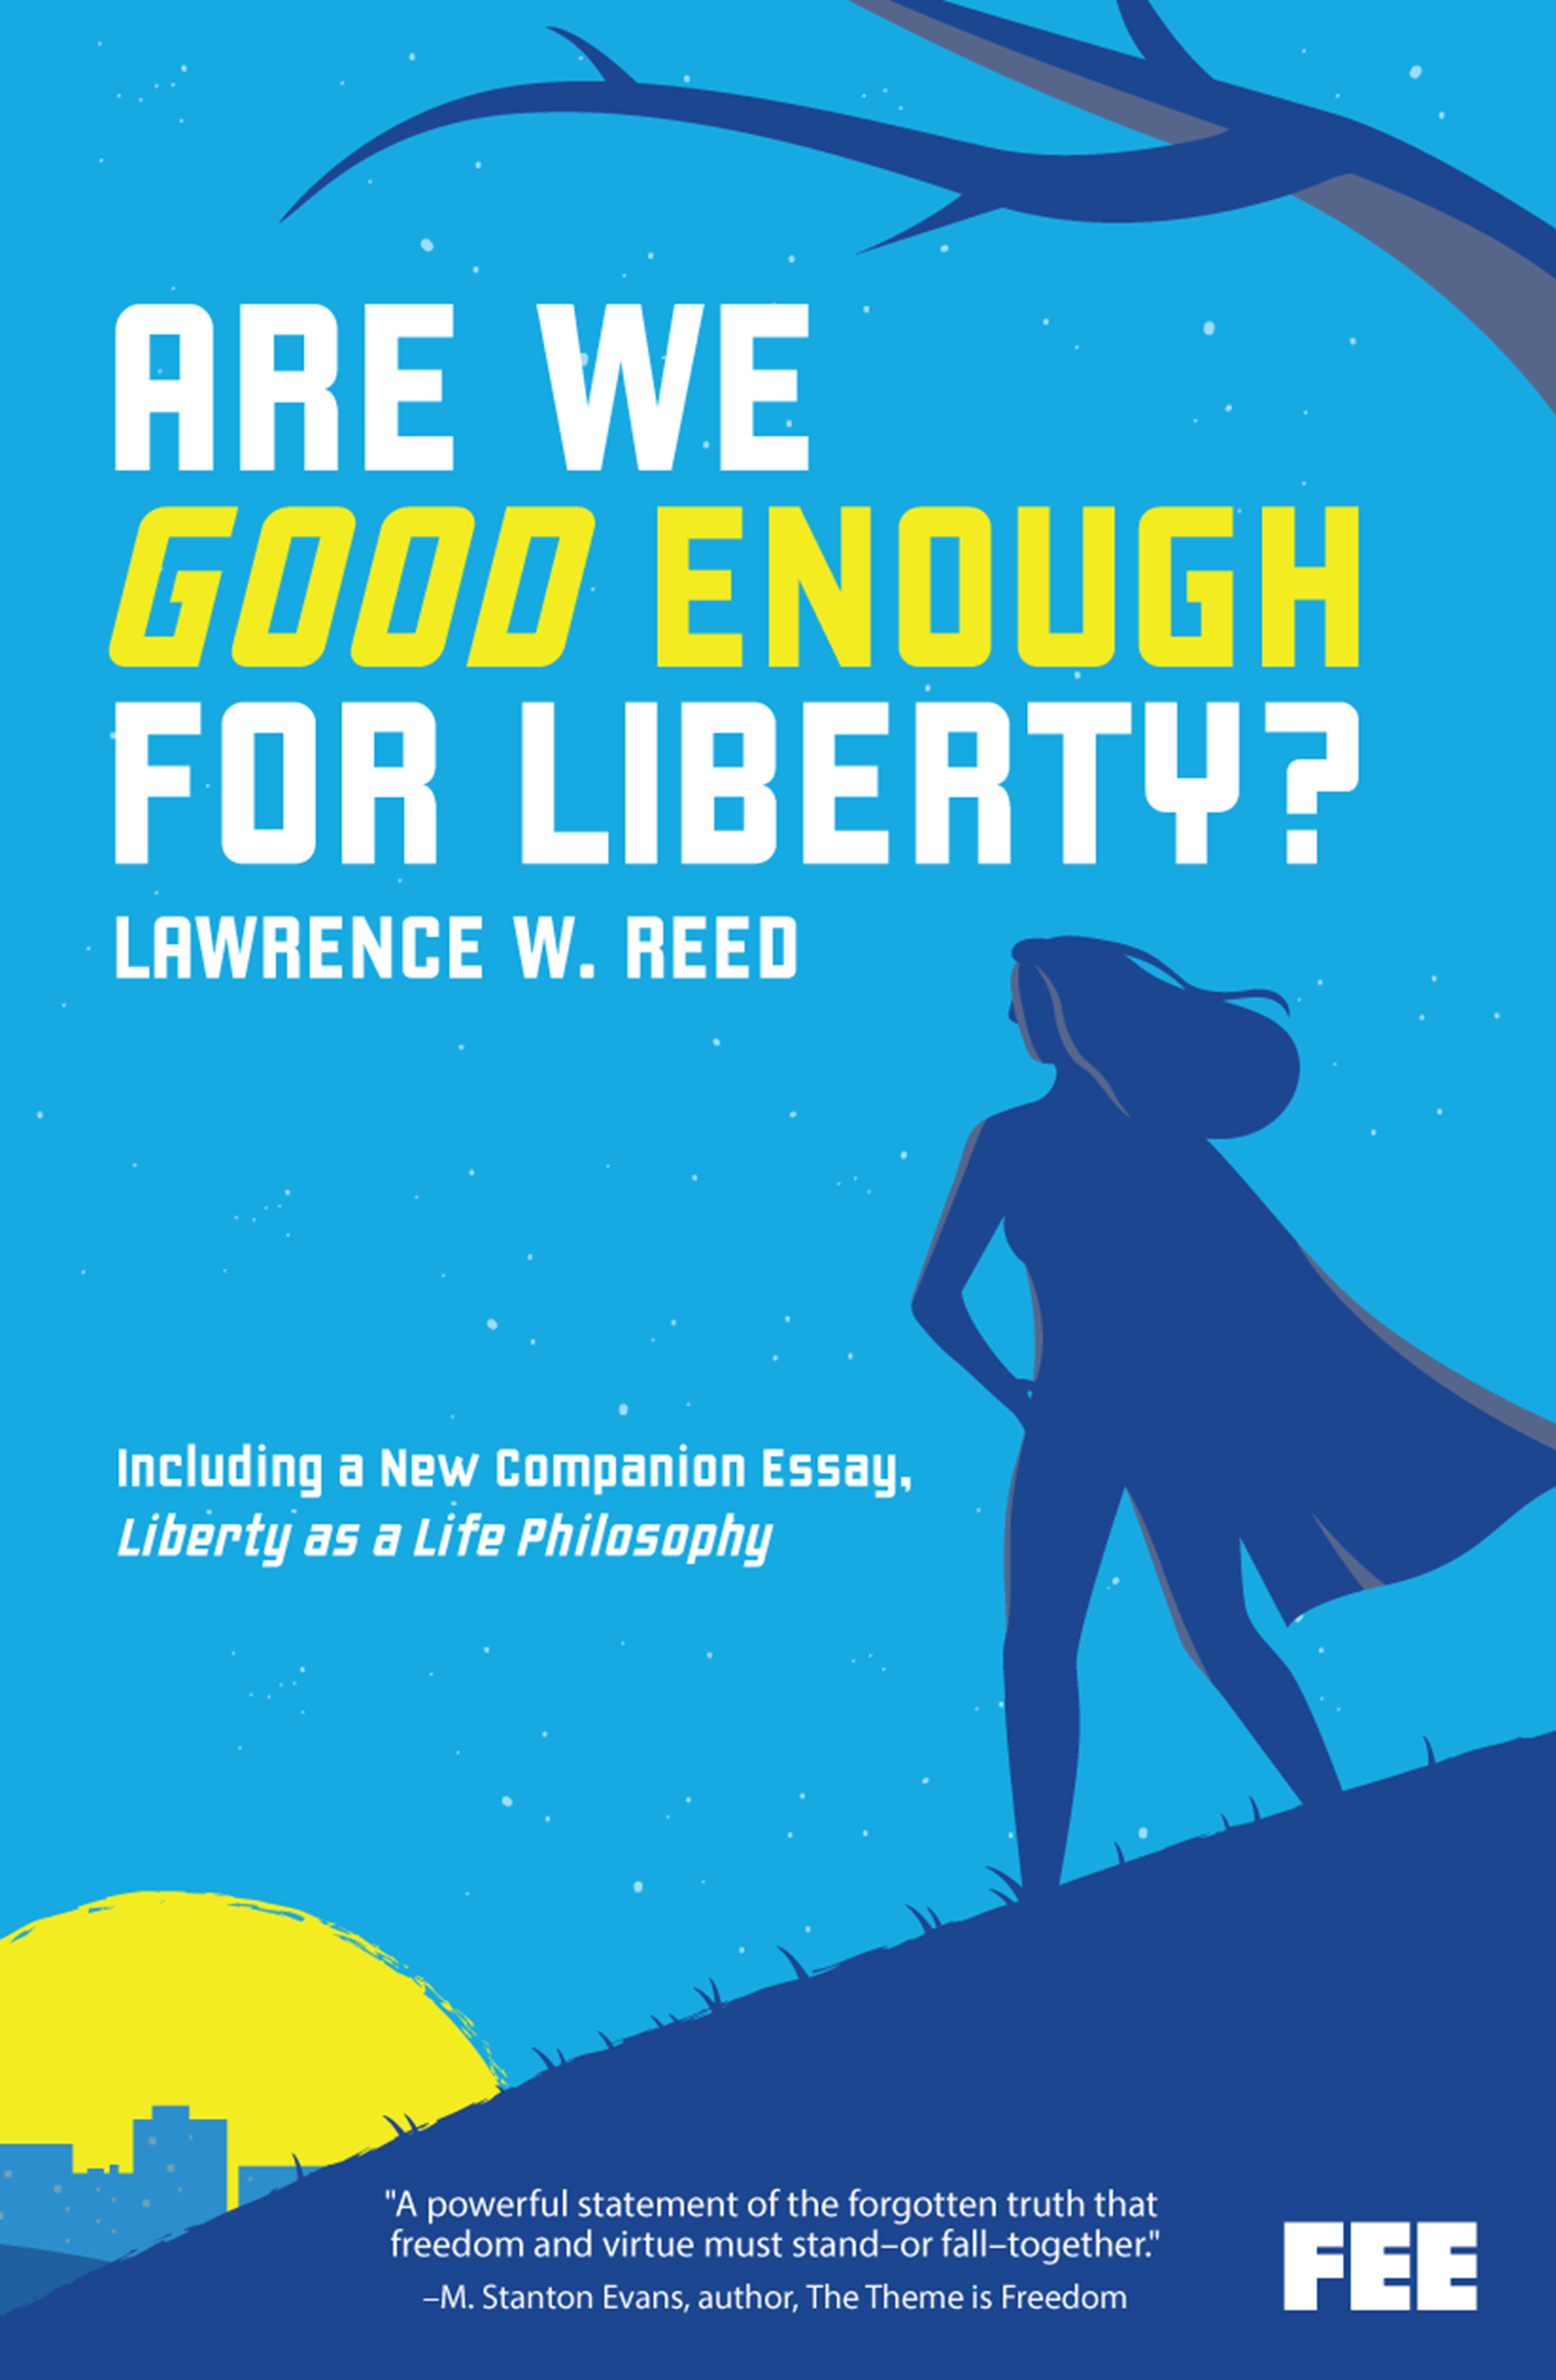 Are We Good Enough for Liberty? - Foundation for Economic